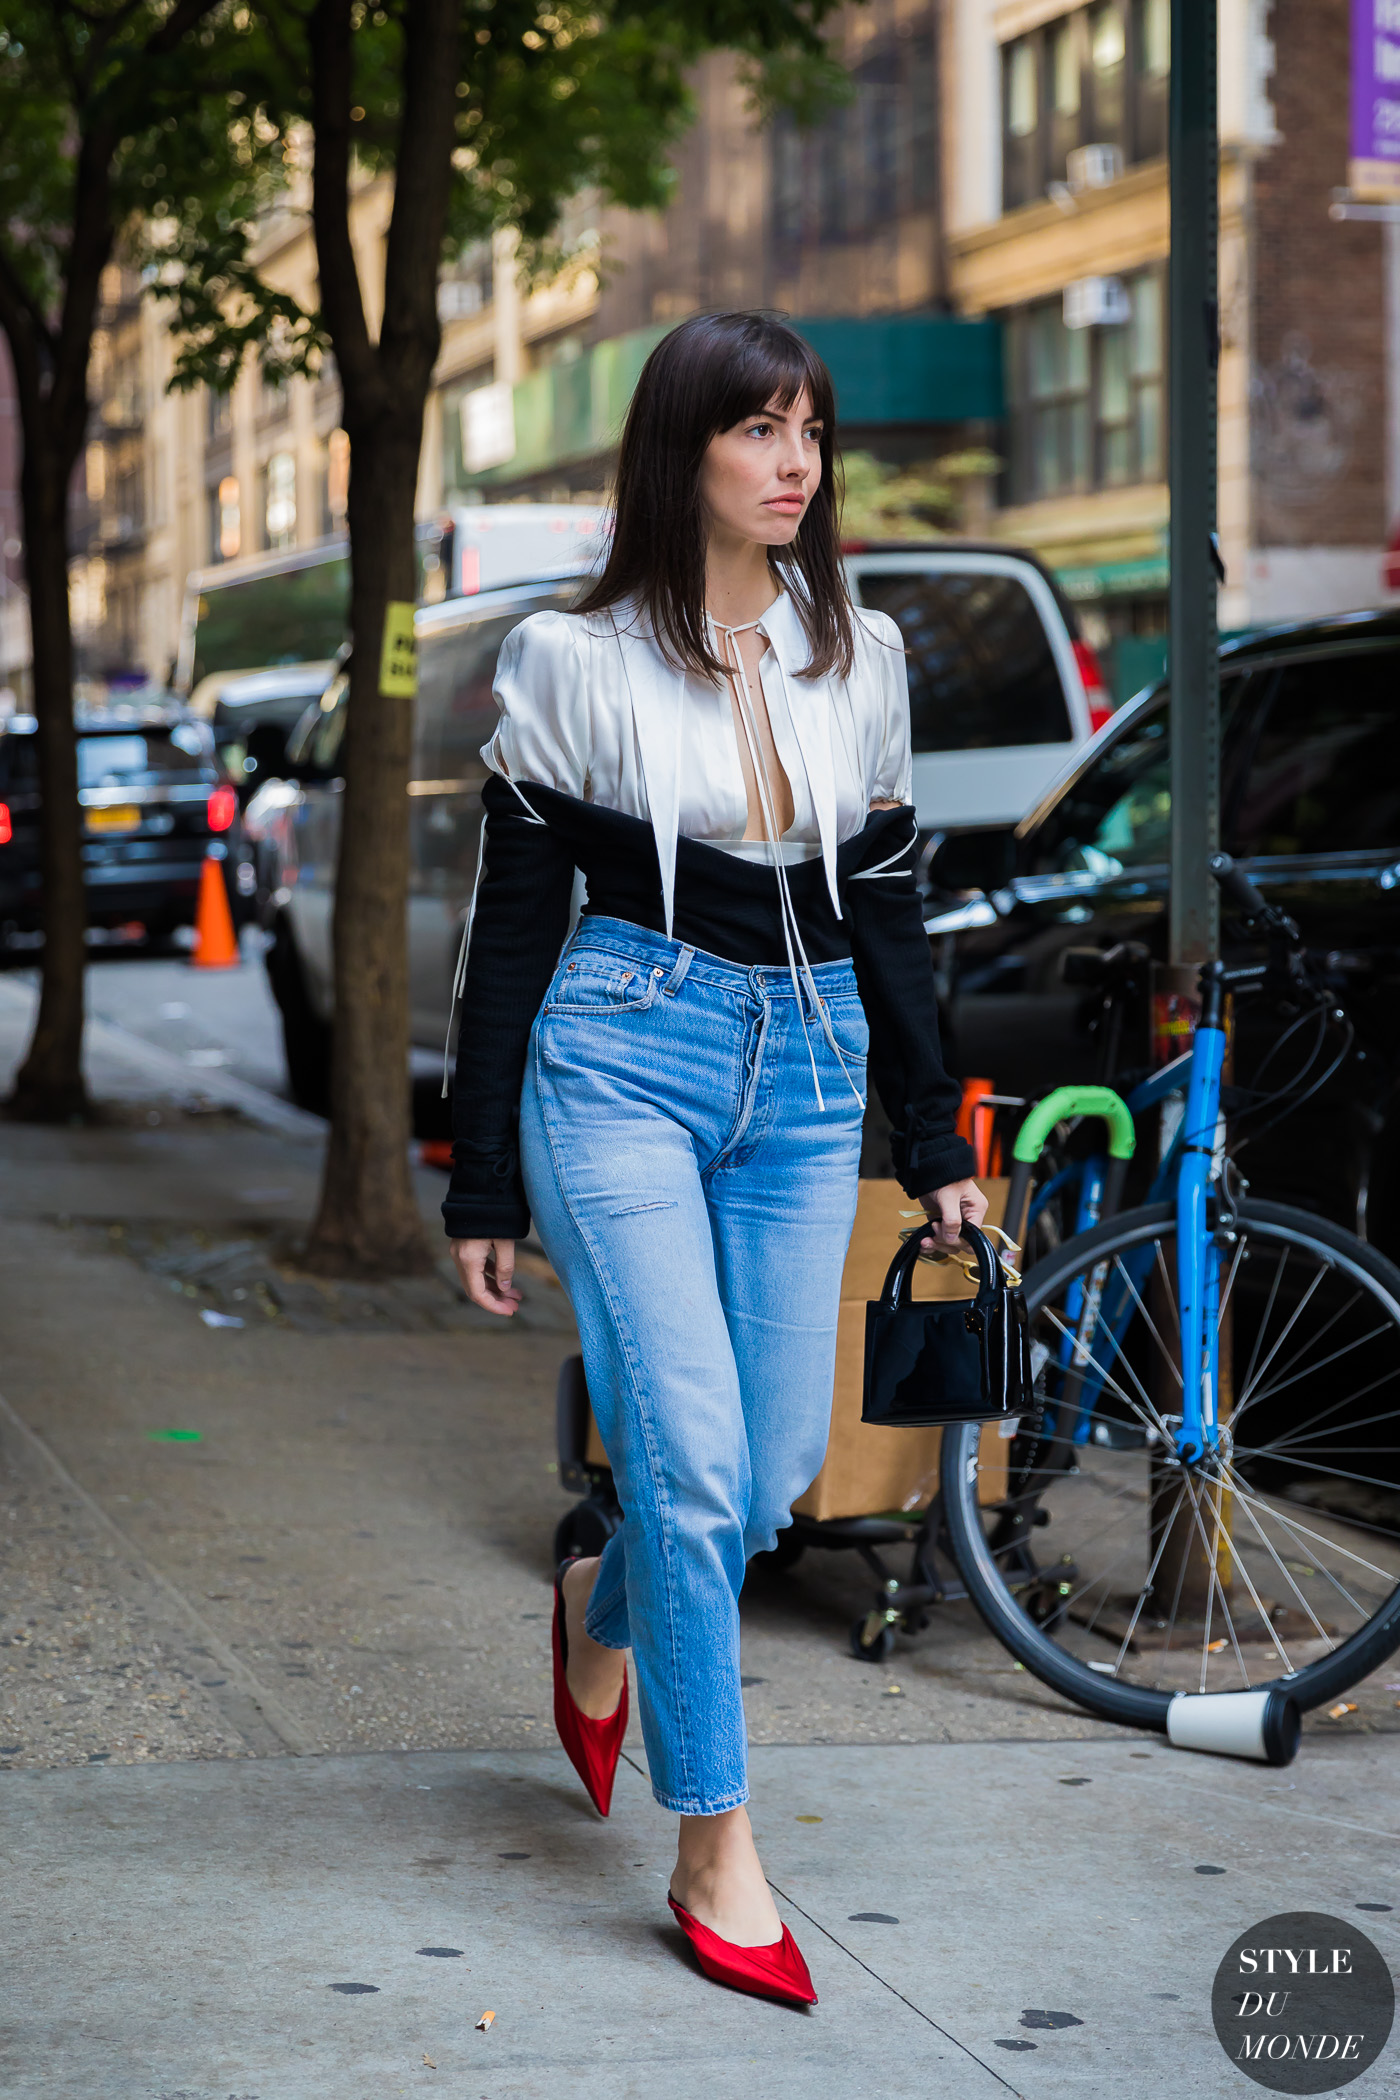 Kat Collings by STYLEDUMONDE Street Style Fashion Photography_48A5782